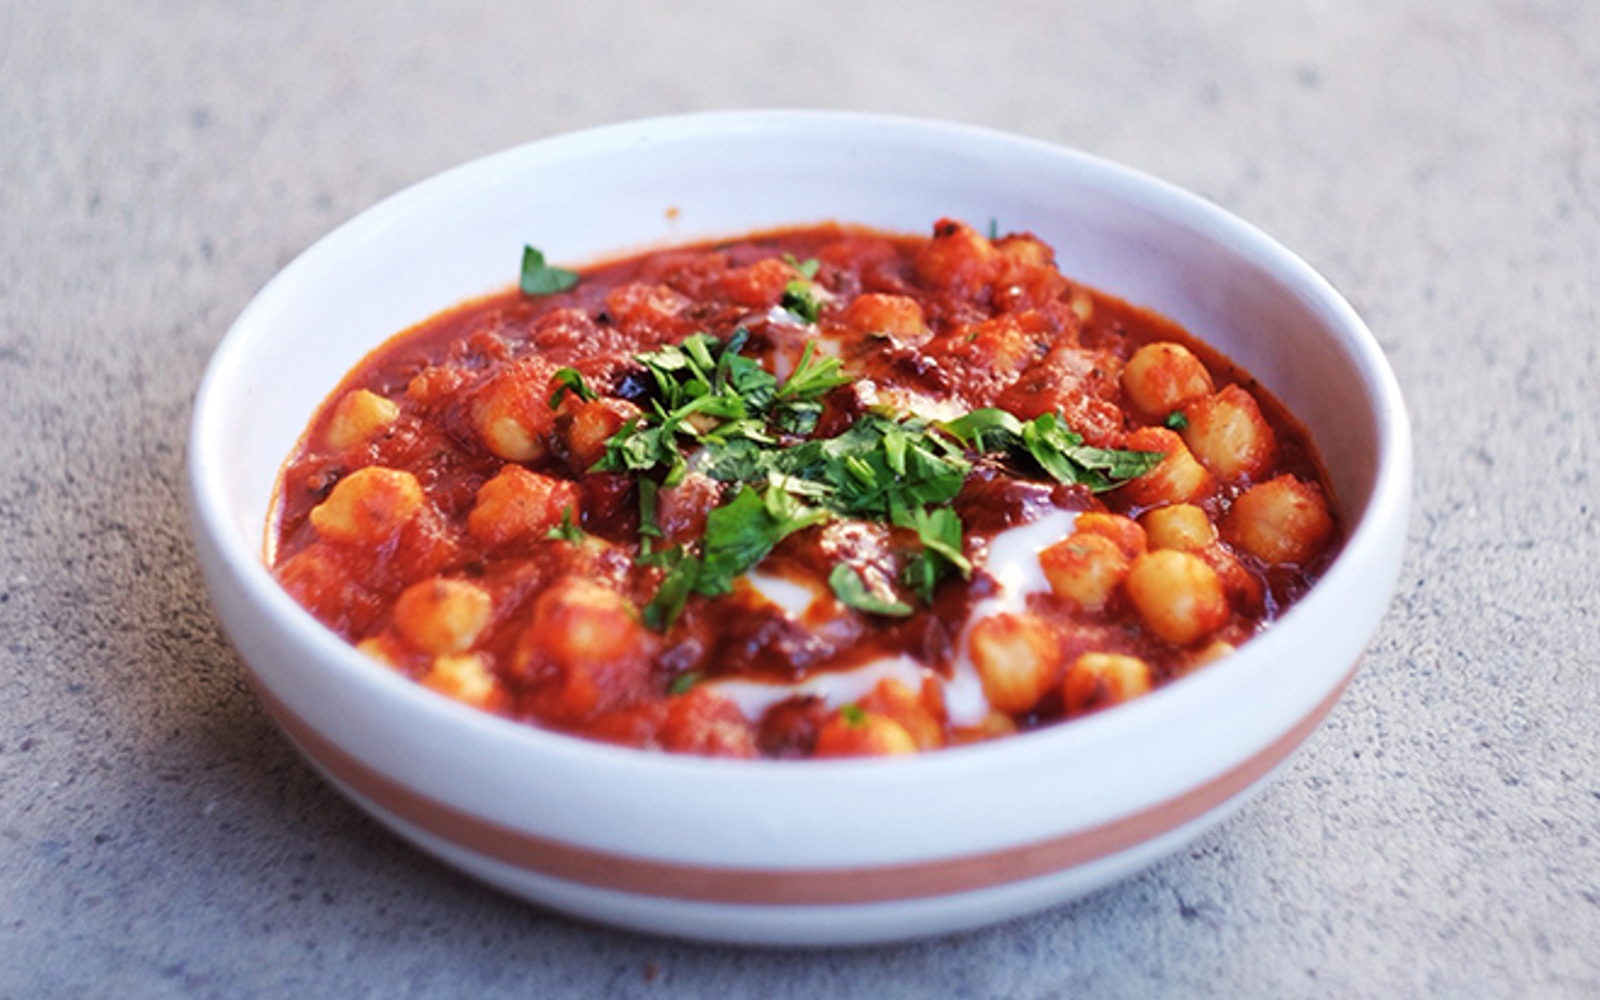 Roasted Tomato and Chickpeas Stew